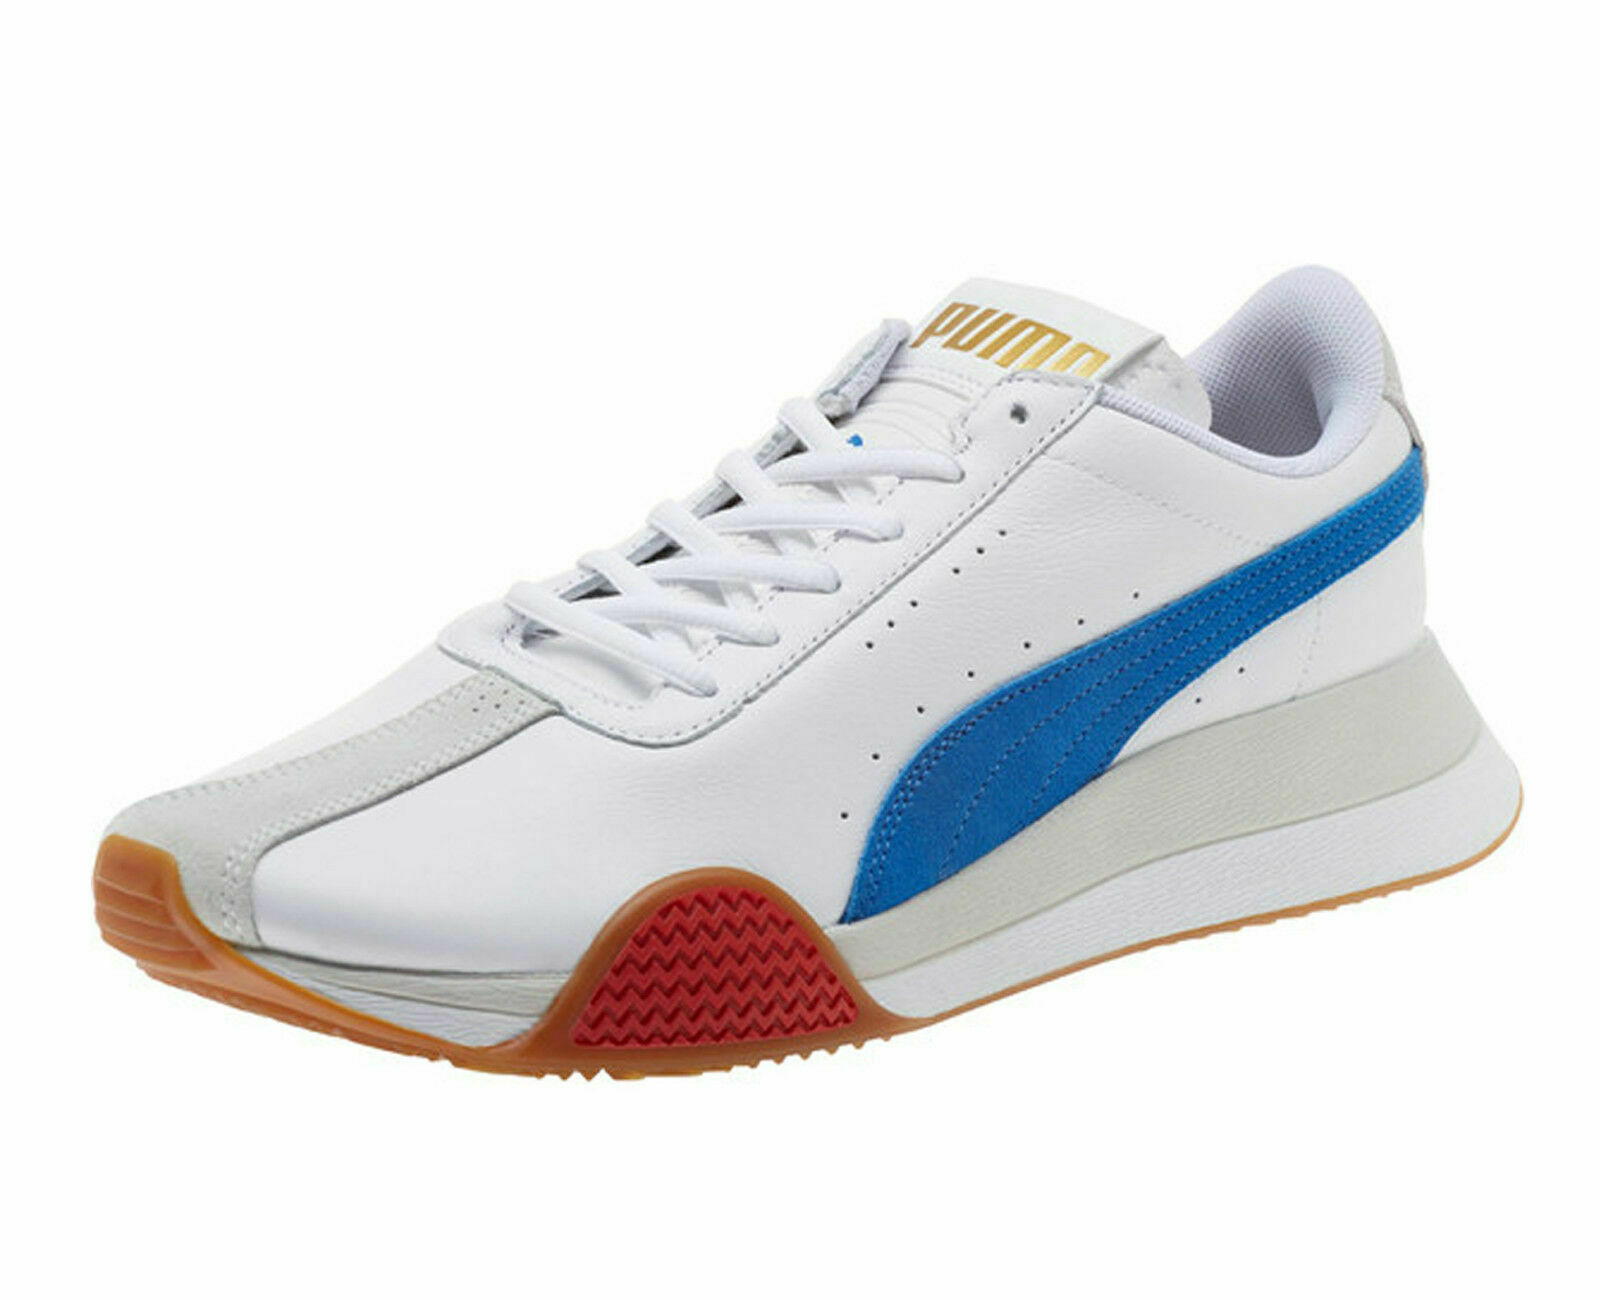 PUMA - TURIN_0 - 367794 01 - Men's Casual Athletic shoes - WHITE blueE - Size 9